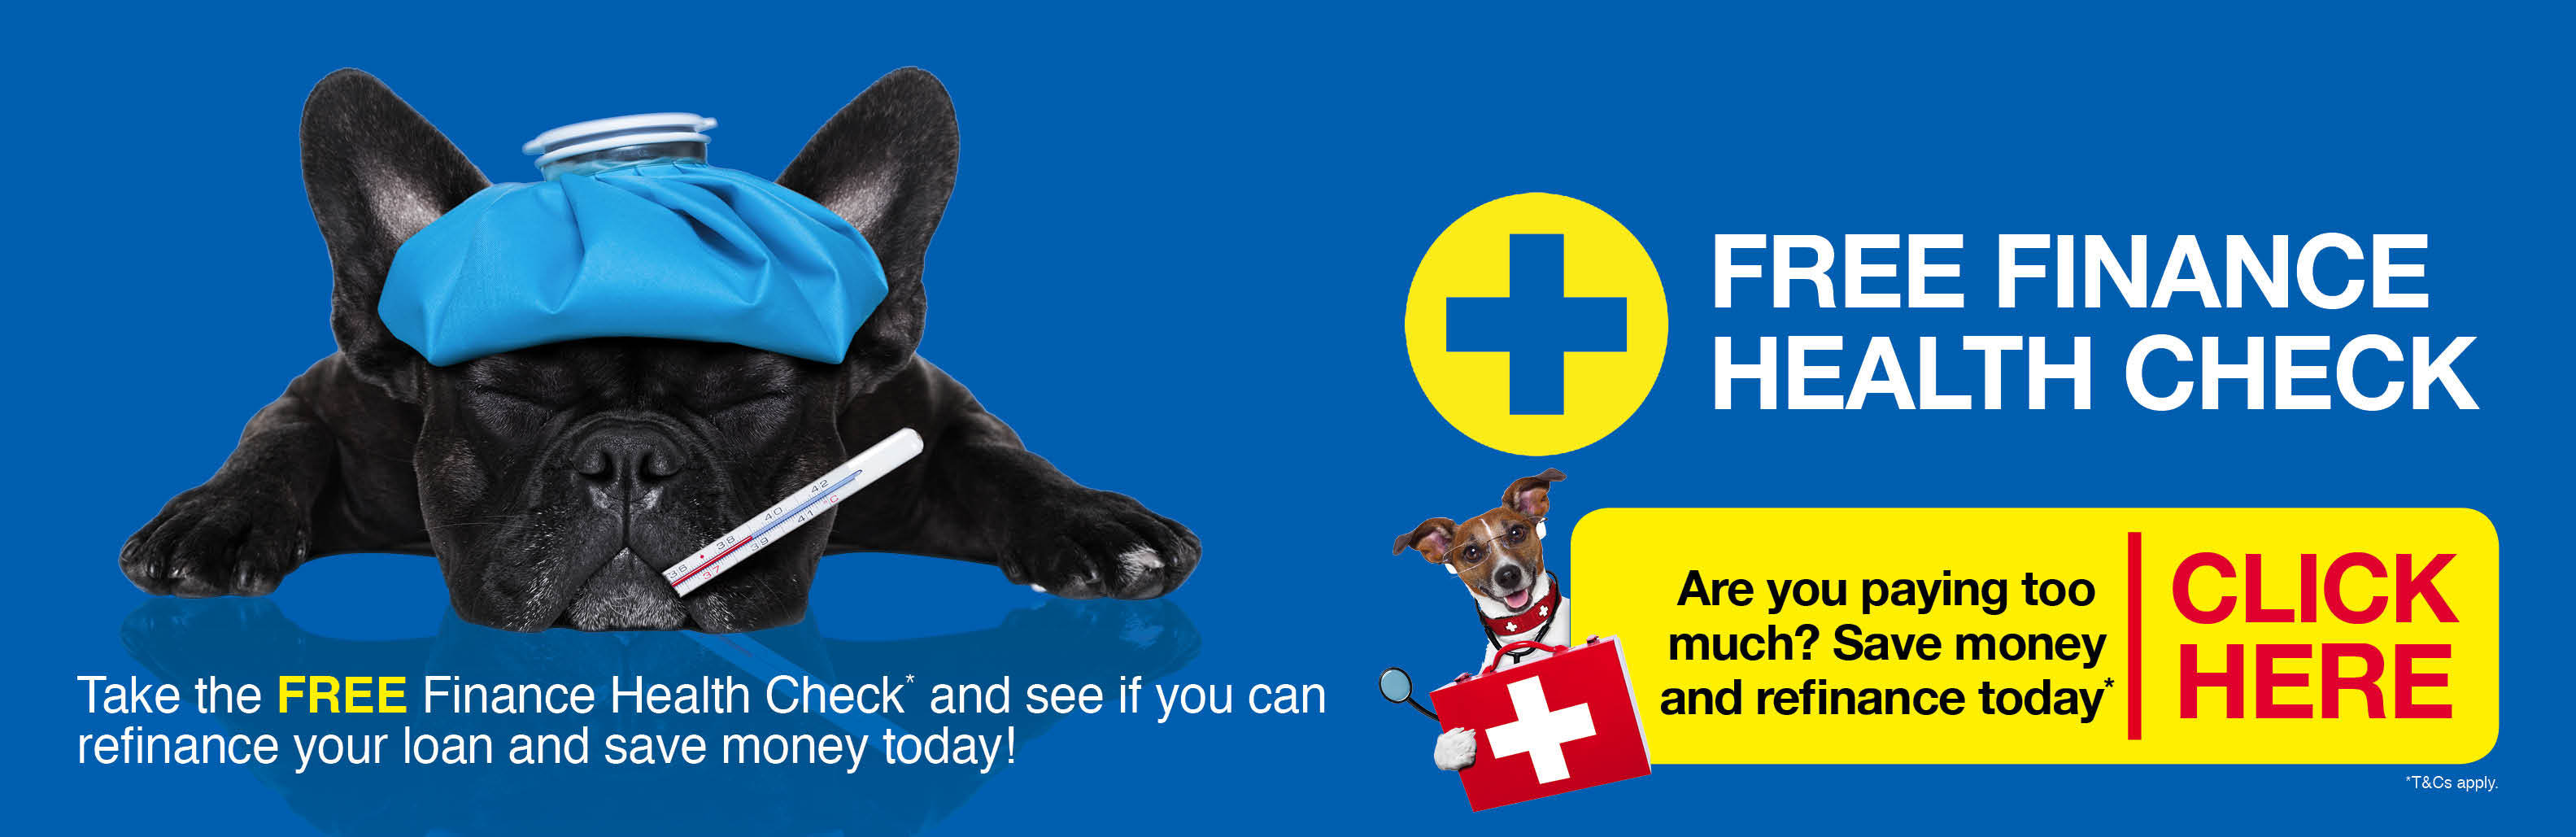 Click here to take the FREE Finance Health Check